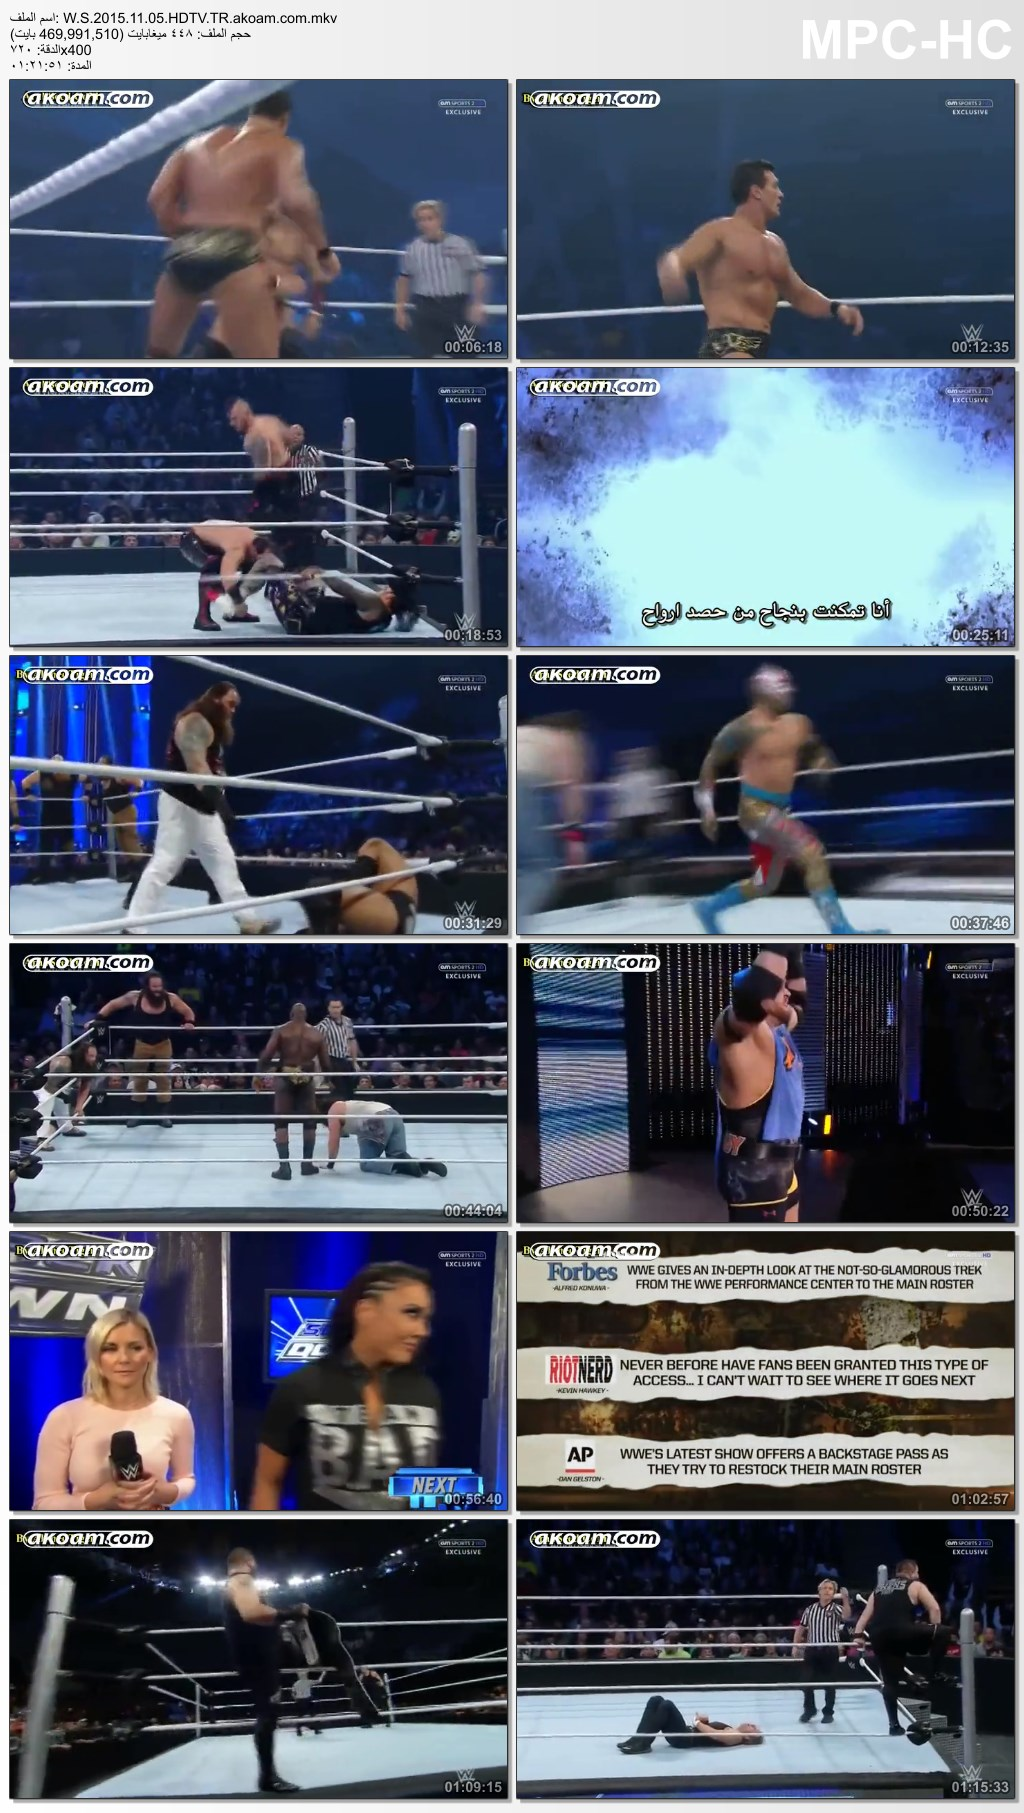 WWE Smackdown,WWE,Smackdown,سماكدوان,سماك دوان